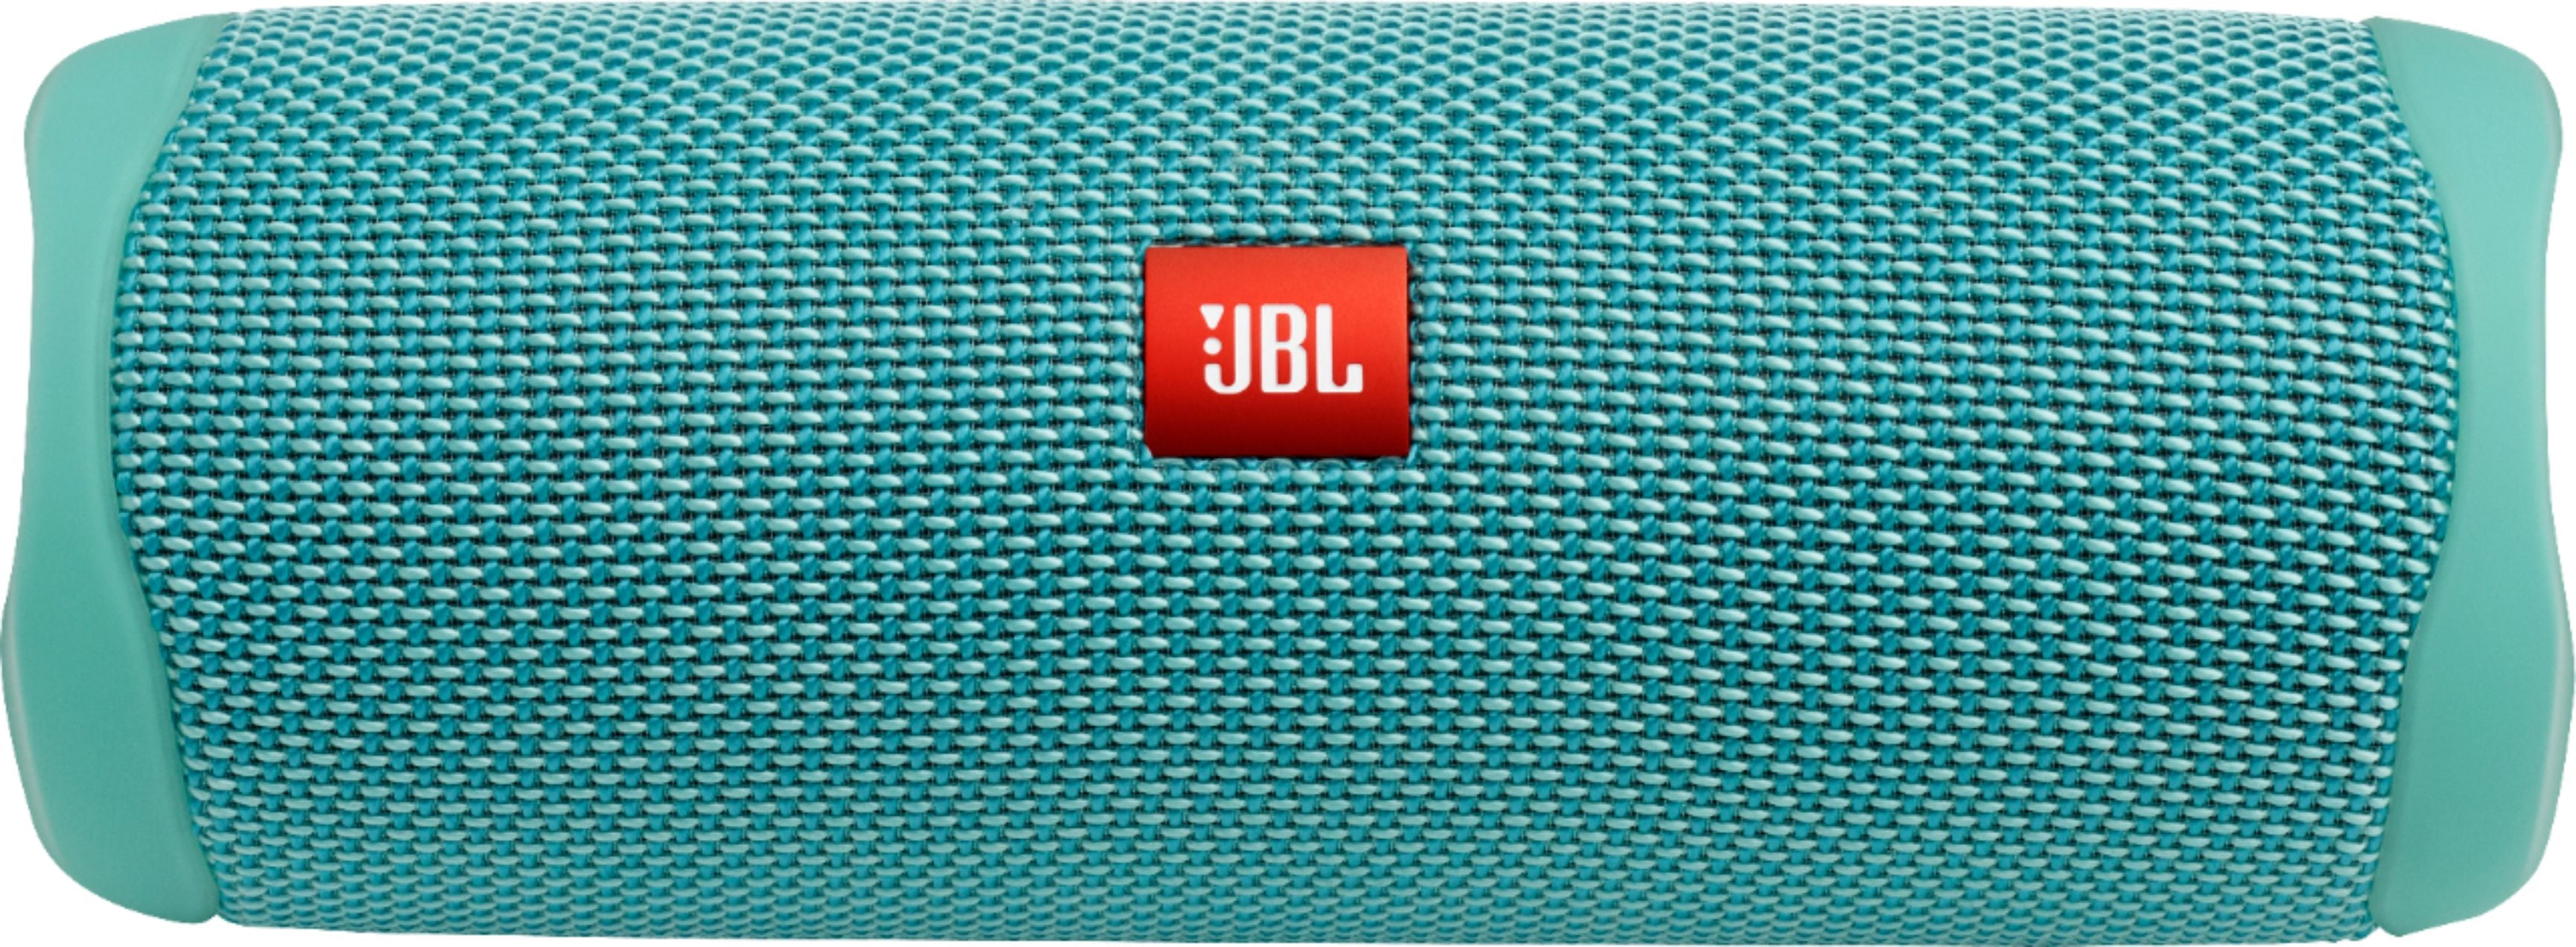 JBL Flip 5 Portable Bluetooth Speaker - Teal (Renewed)